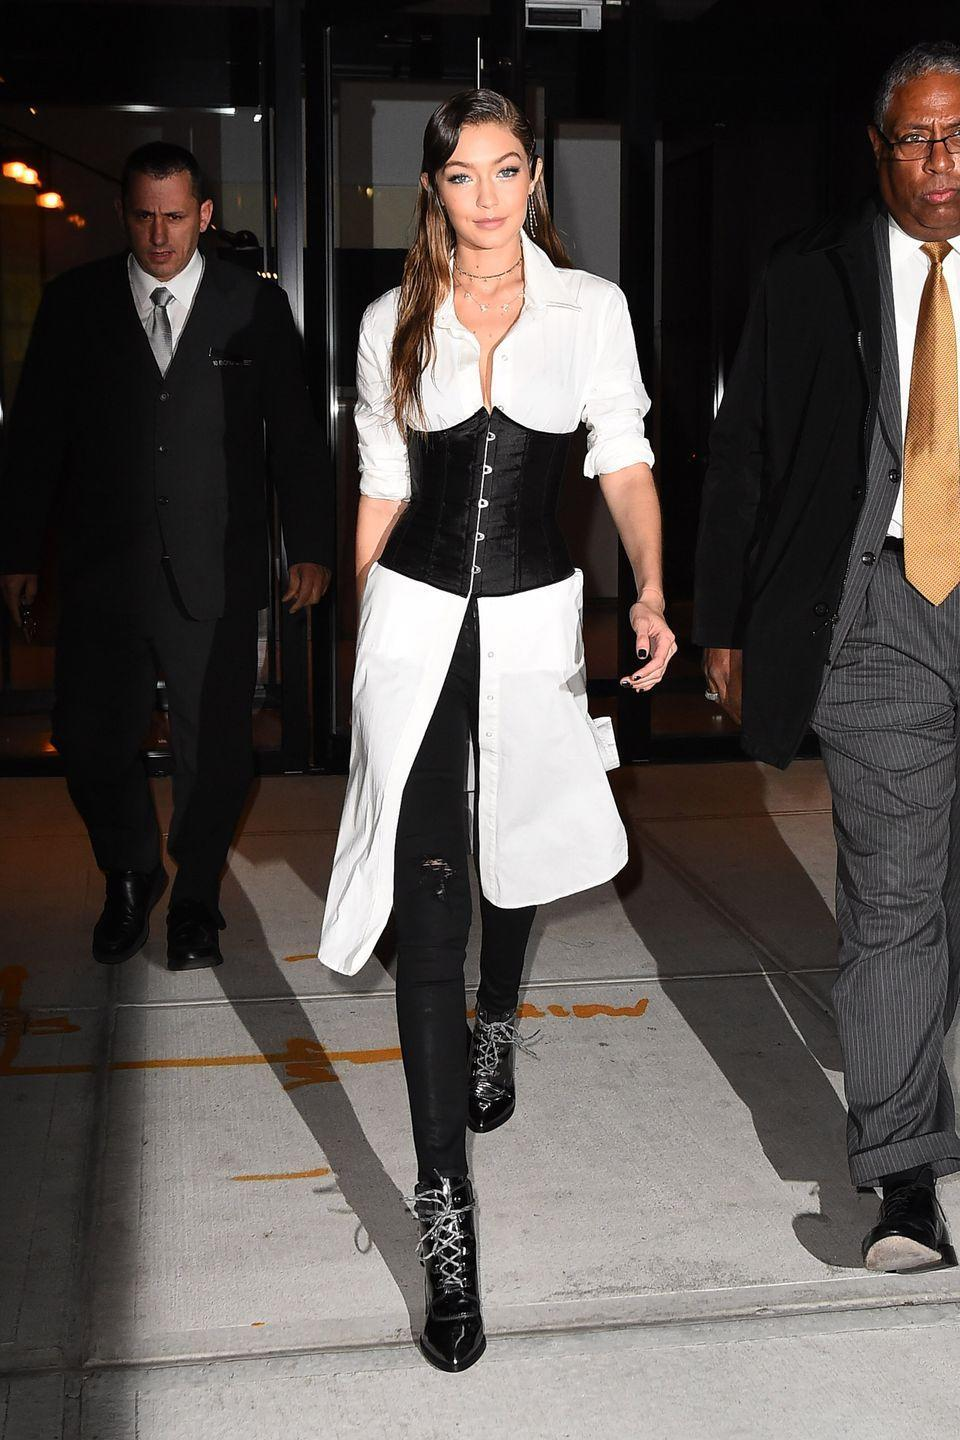 """<p>In a black satin corset over a white button-down shirtdress, black ripped skinny jeans and her <a href=""""https://www.harpersbazaar.com/fashion/models/news/a18391/gigi-hadid-stuart-weitzman-boot/"""" rel=""""nofollow noopener"""" target=""""_blank"""" data-ylk=""""slk:Gigi boot"""" class=""""link rapid-noclick-resp"""">Gigi boot</a>, which she designed for Stuart Weitzman, while out in NYC. </p>"""